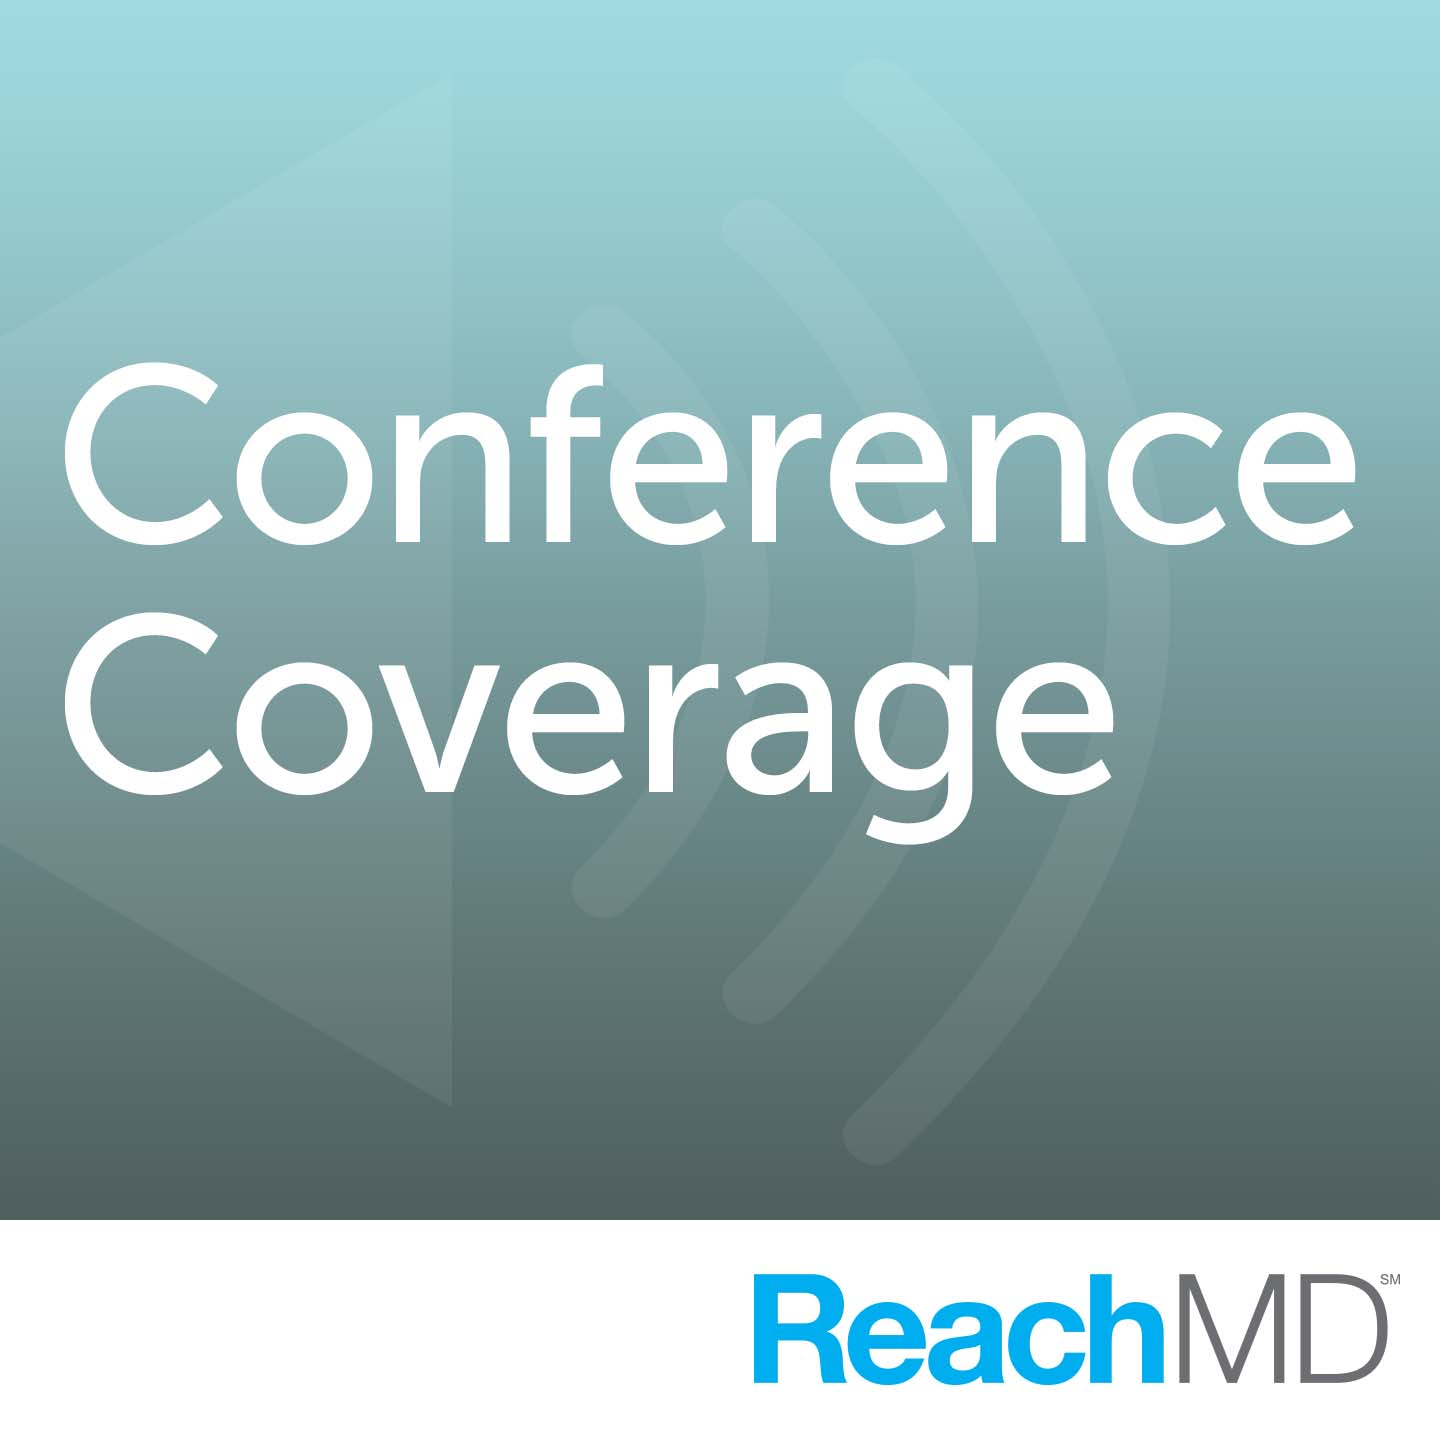 Conference Coverage